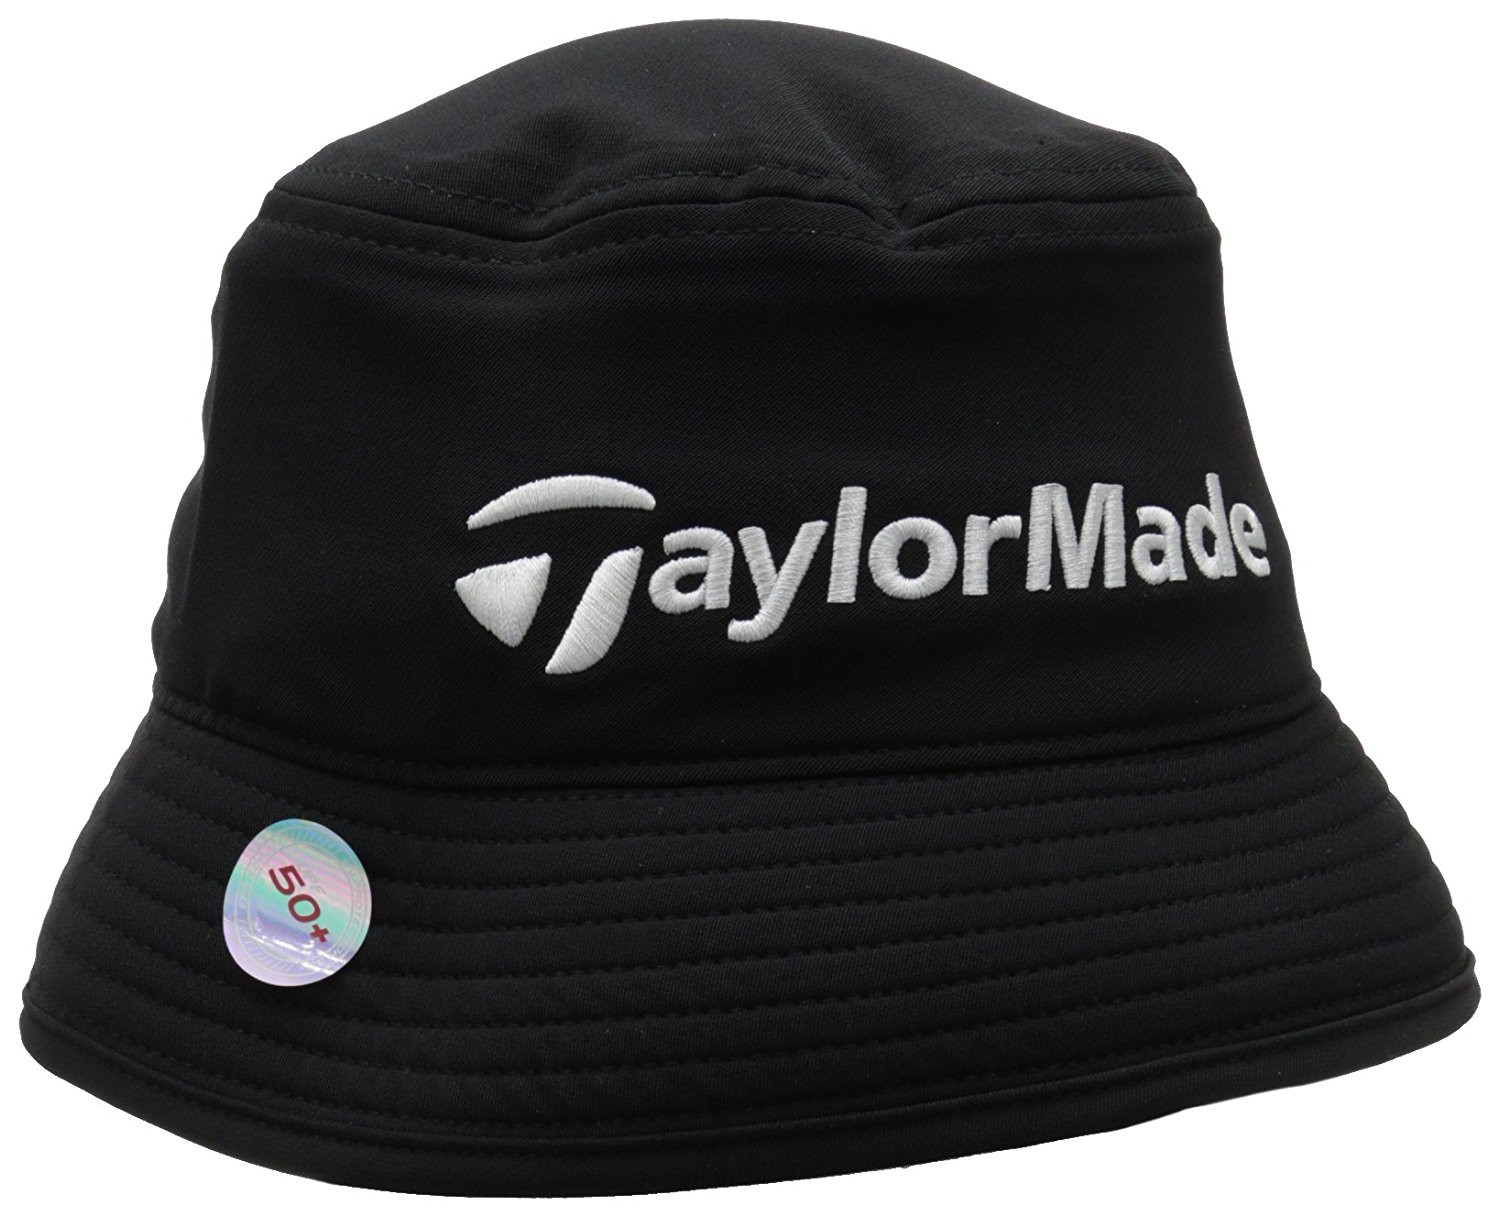 81ee4866990b3 Buy TaylorMade Storm Bucket Hat in Cheap Price on Alibaba.com